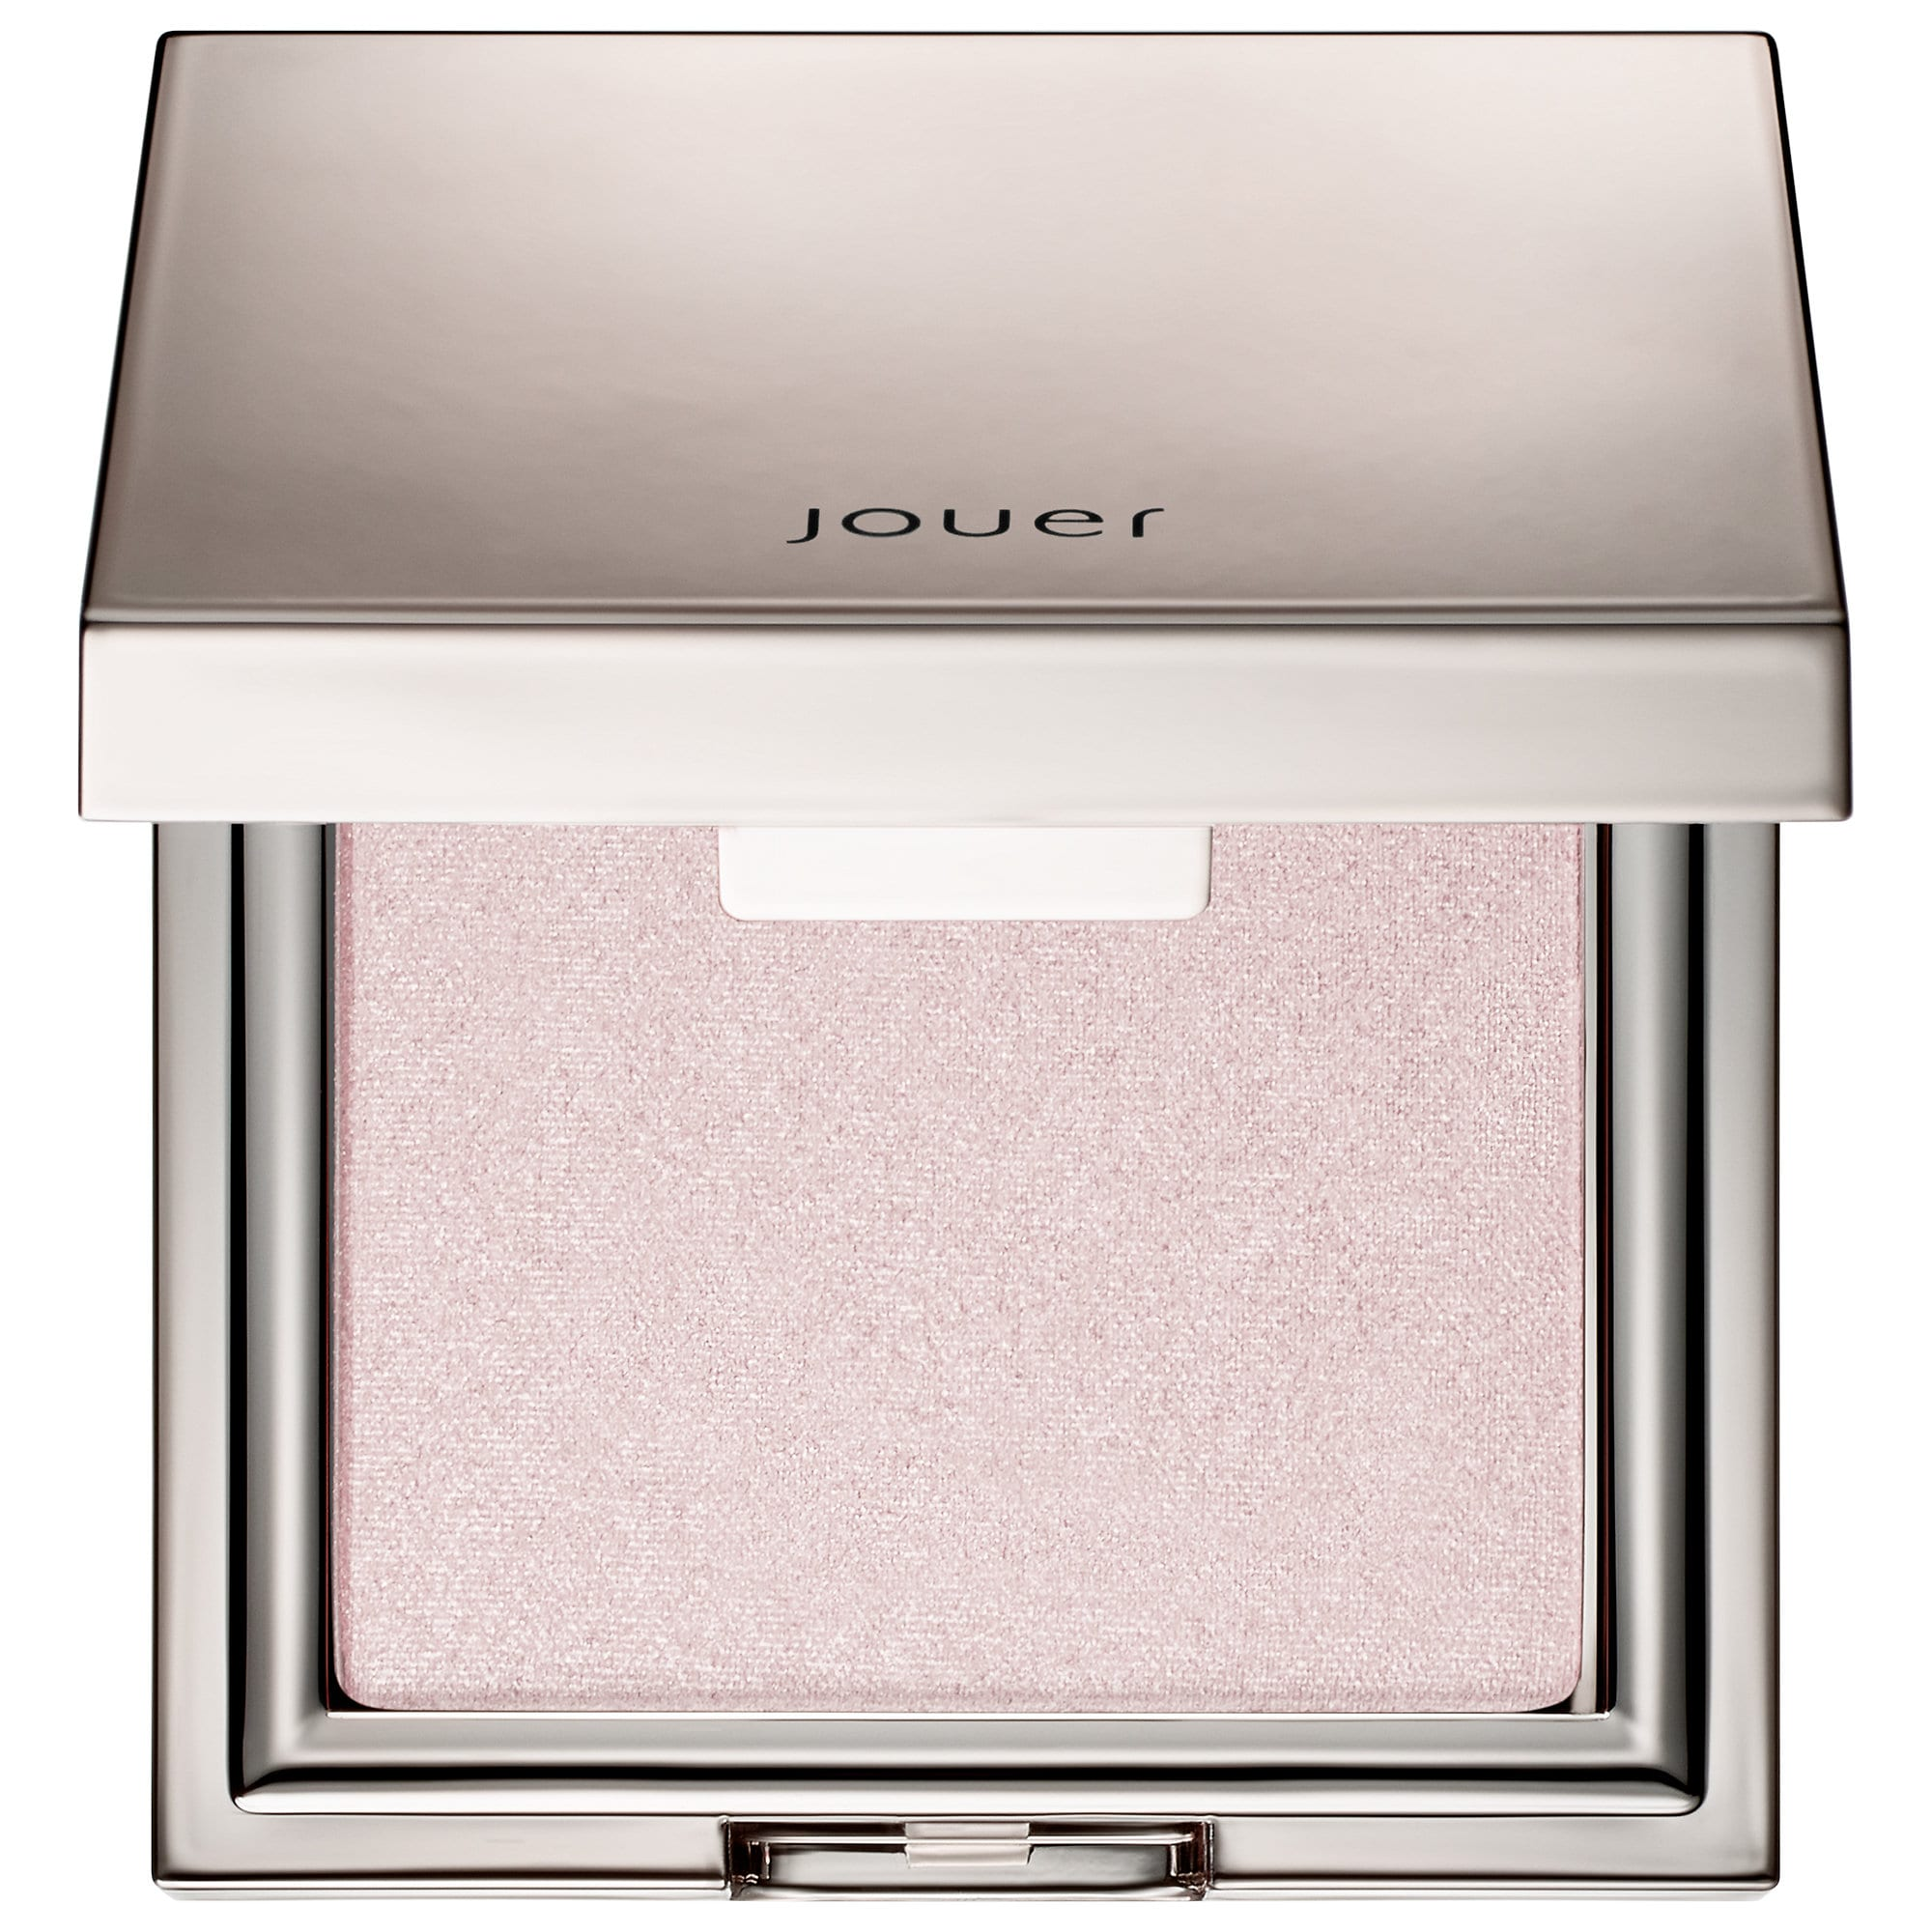 Jouer Cosmetics - Powder Highlighter